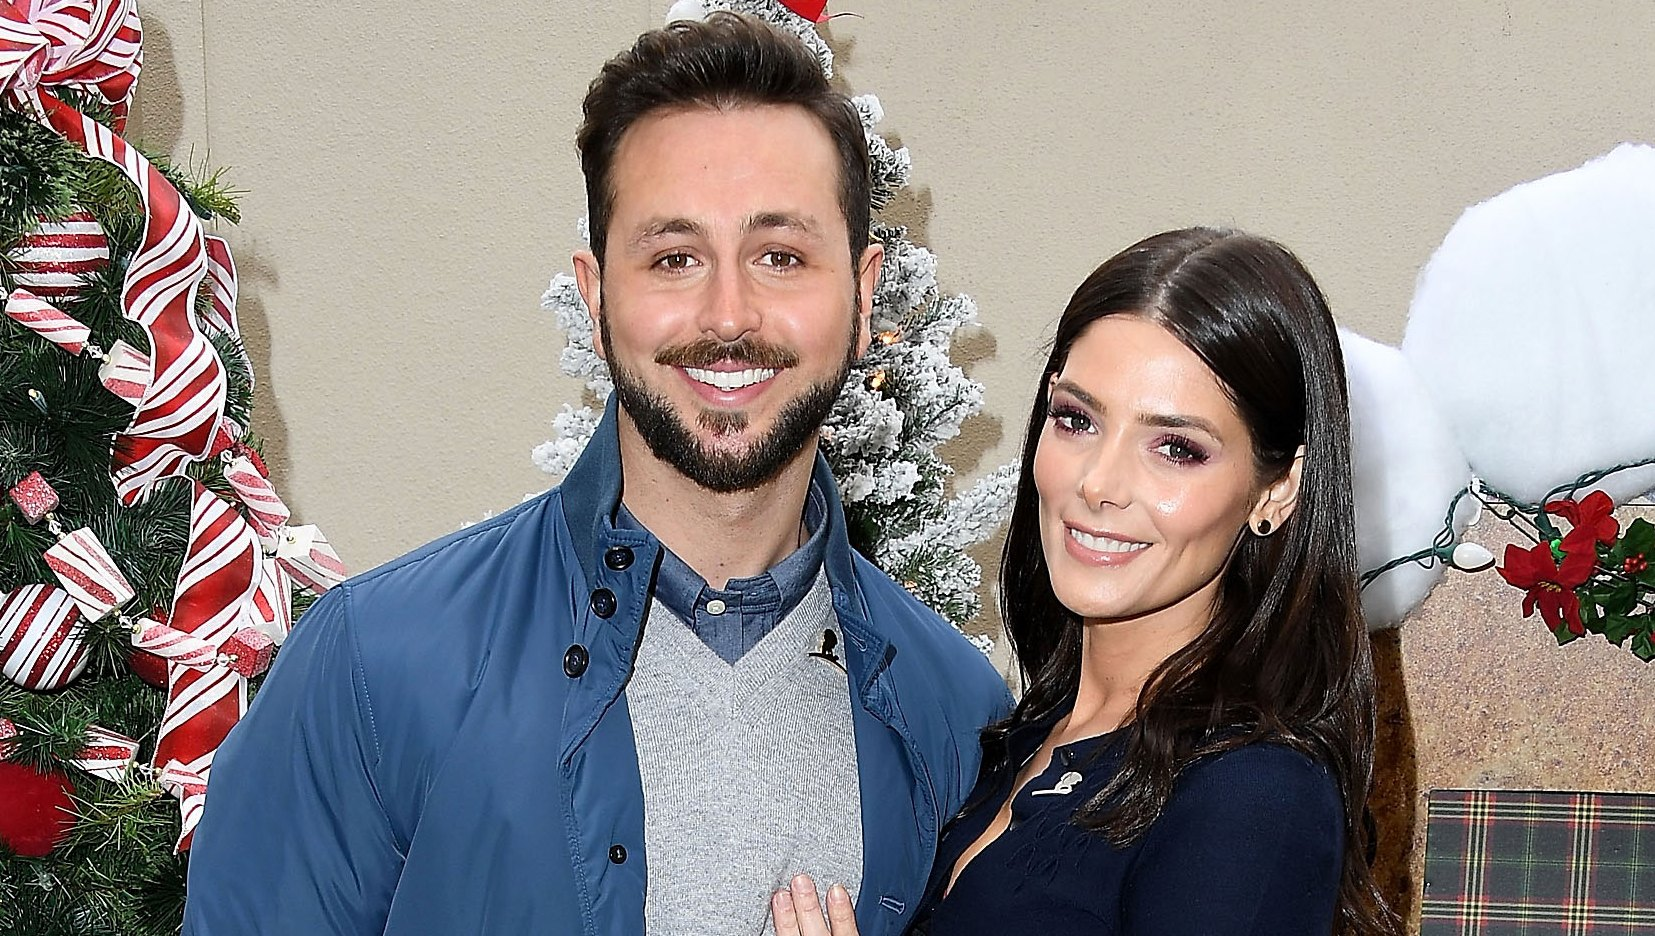 Ashley Greene Gushes About Married Life: 'It's Been Really Wonderful'